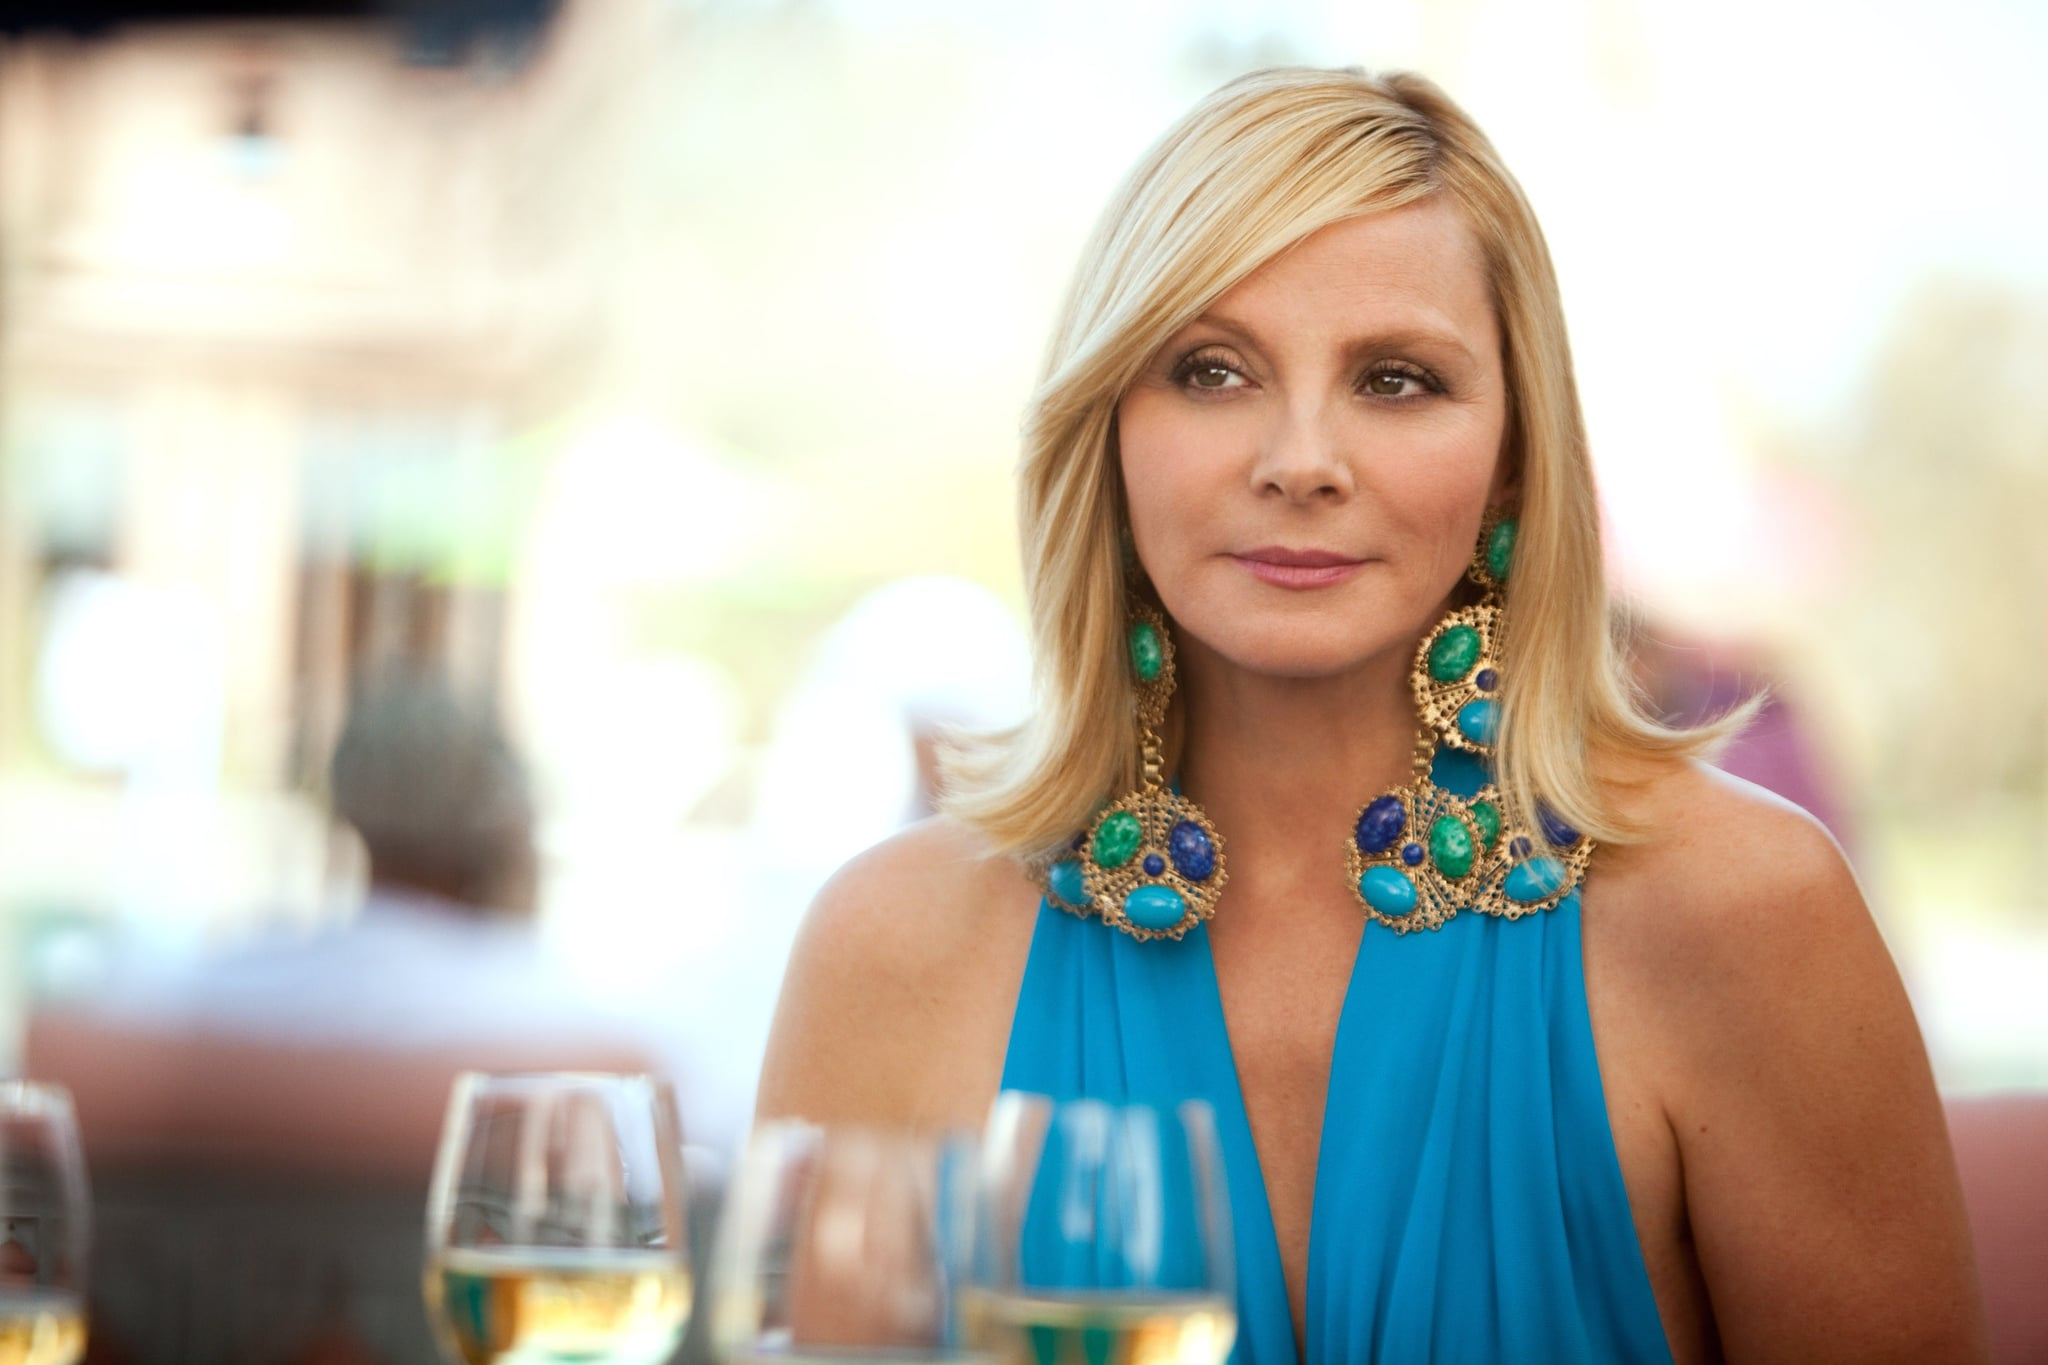 She accented a cobalt blue dress with seriously dramatic multistoned costume earrings.